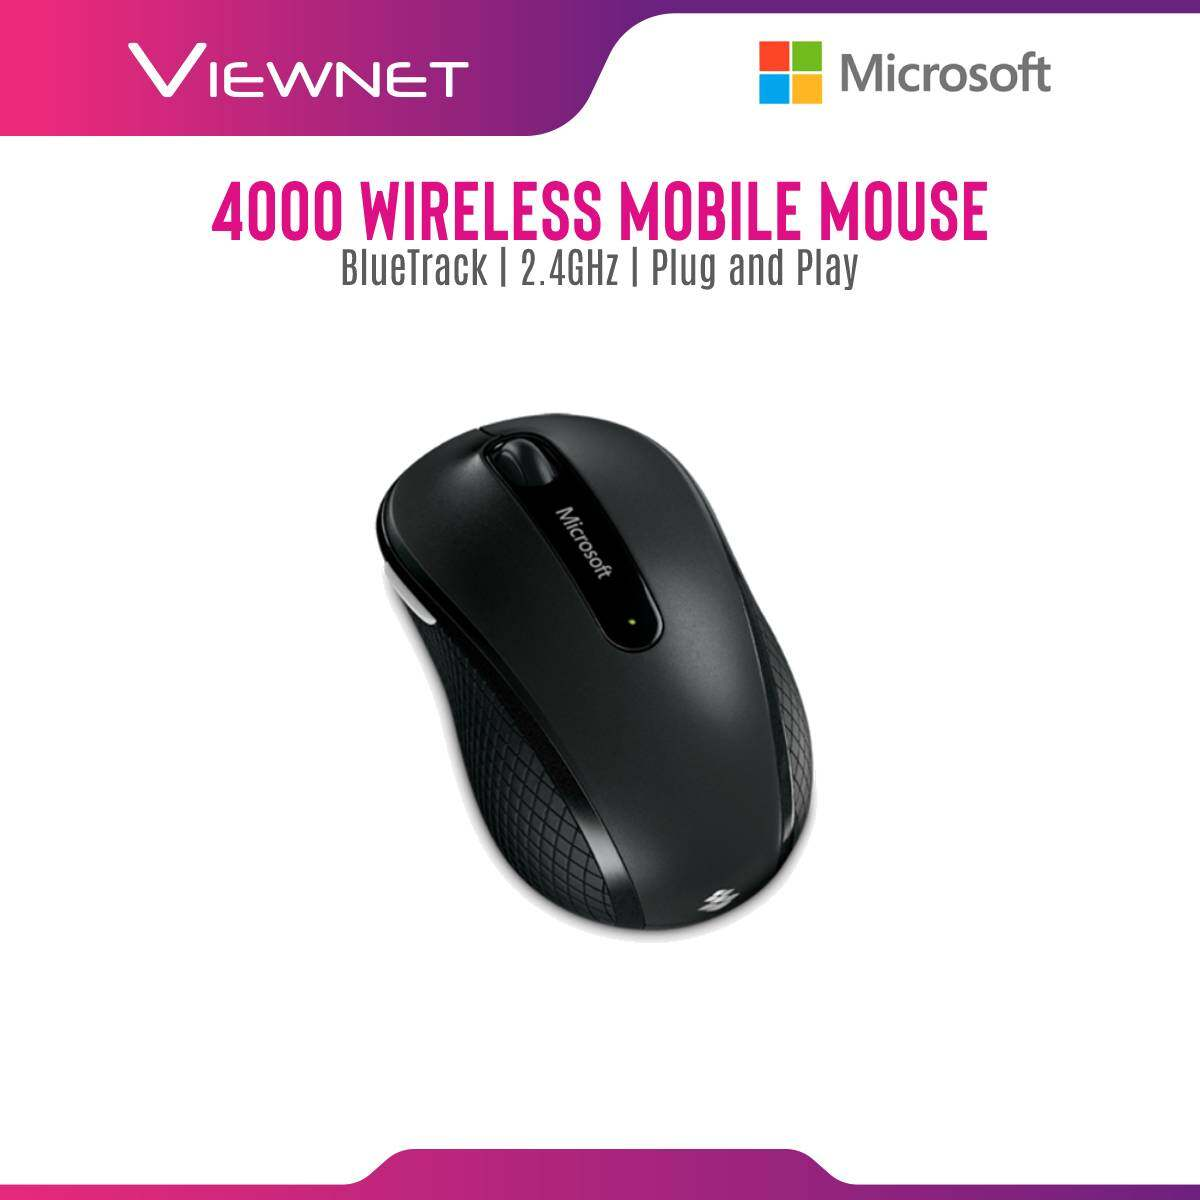 Microsoft Wireless Mouse Mobile Mouse 4000 with Bluetrack Technology, Plug and Play, Nano Receiver, Reliable 2.4Ghz Wireless, Up To 10 Month Battery Life